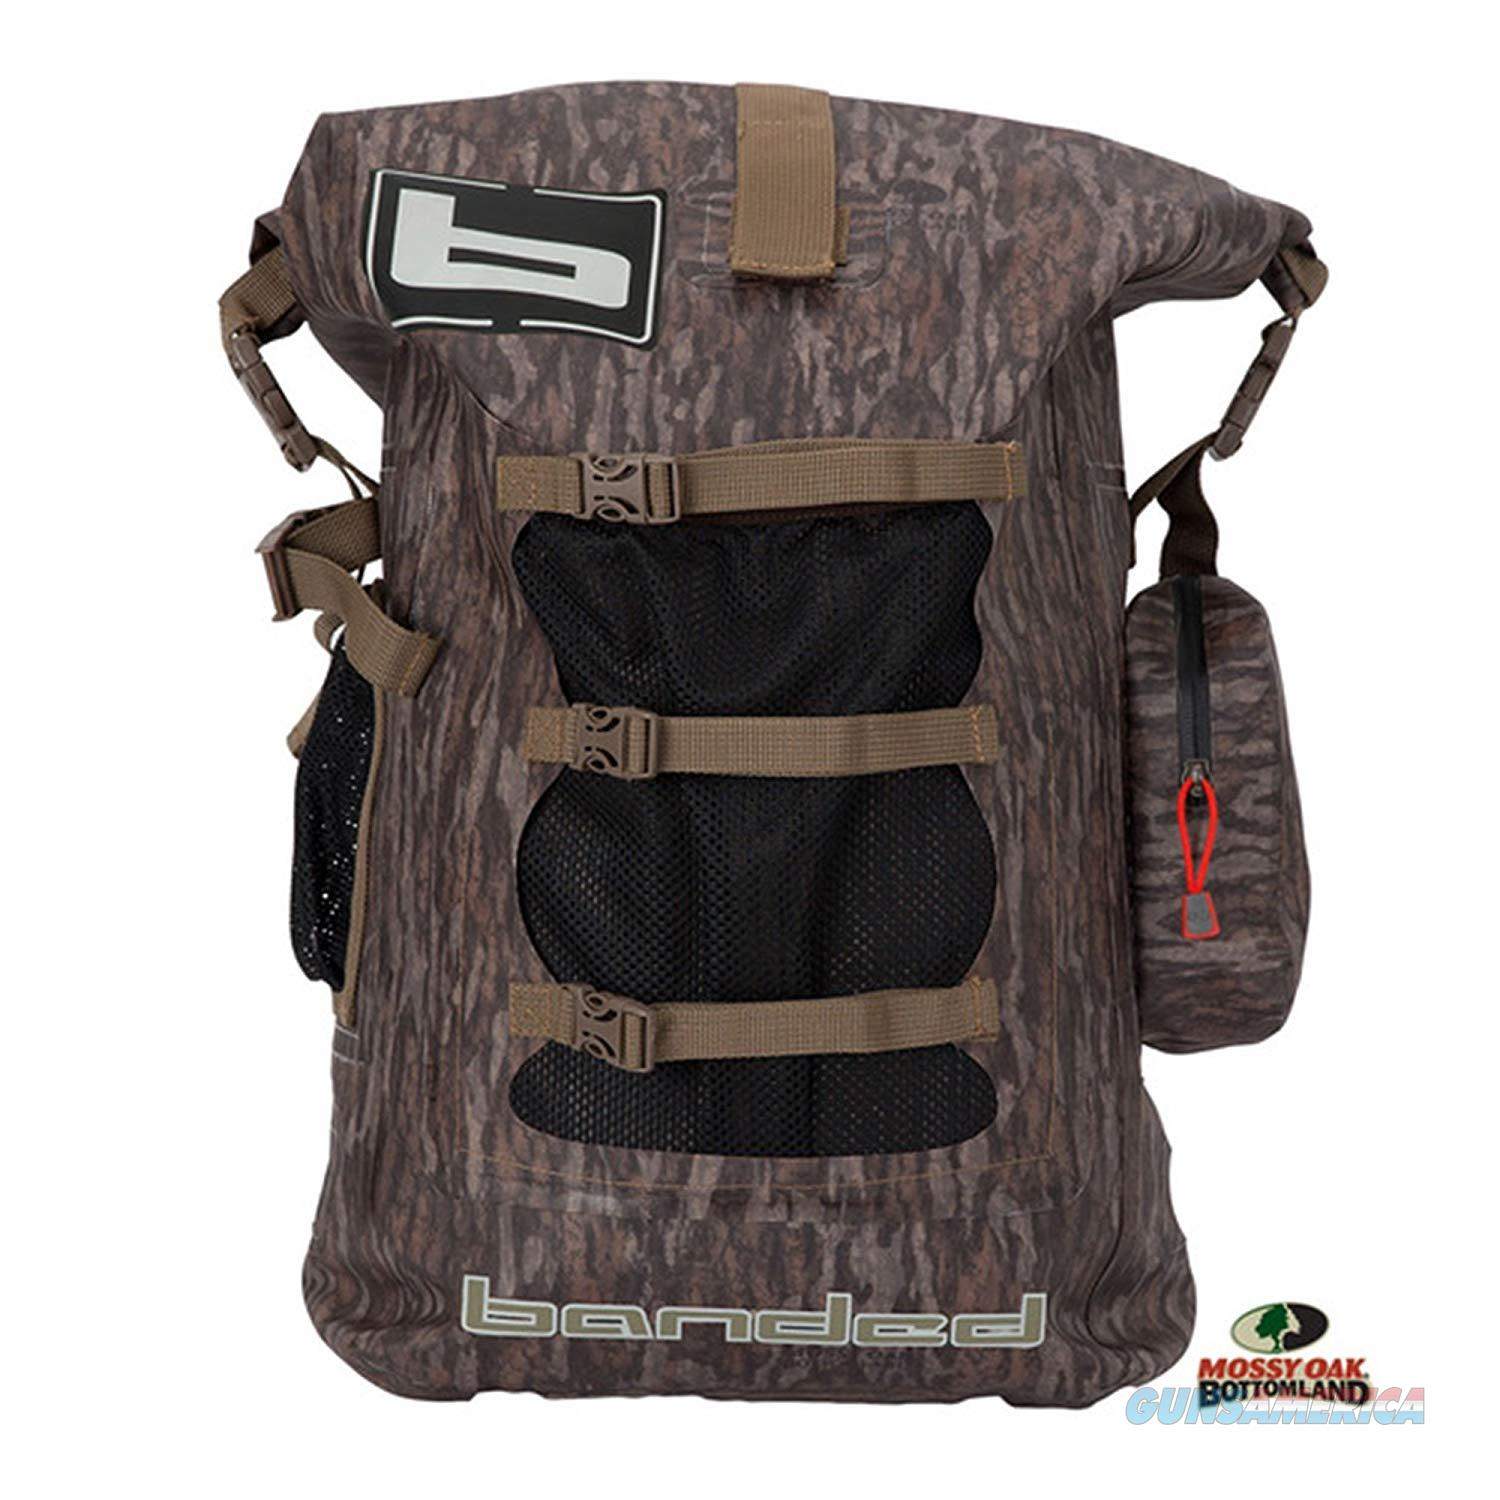 Banded Arc Welded Back Pack Bottomland  Non-Guns > Hunting Clothing and Equipment > Ammo Pouches/Holders/Shell Bags